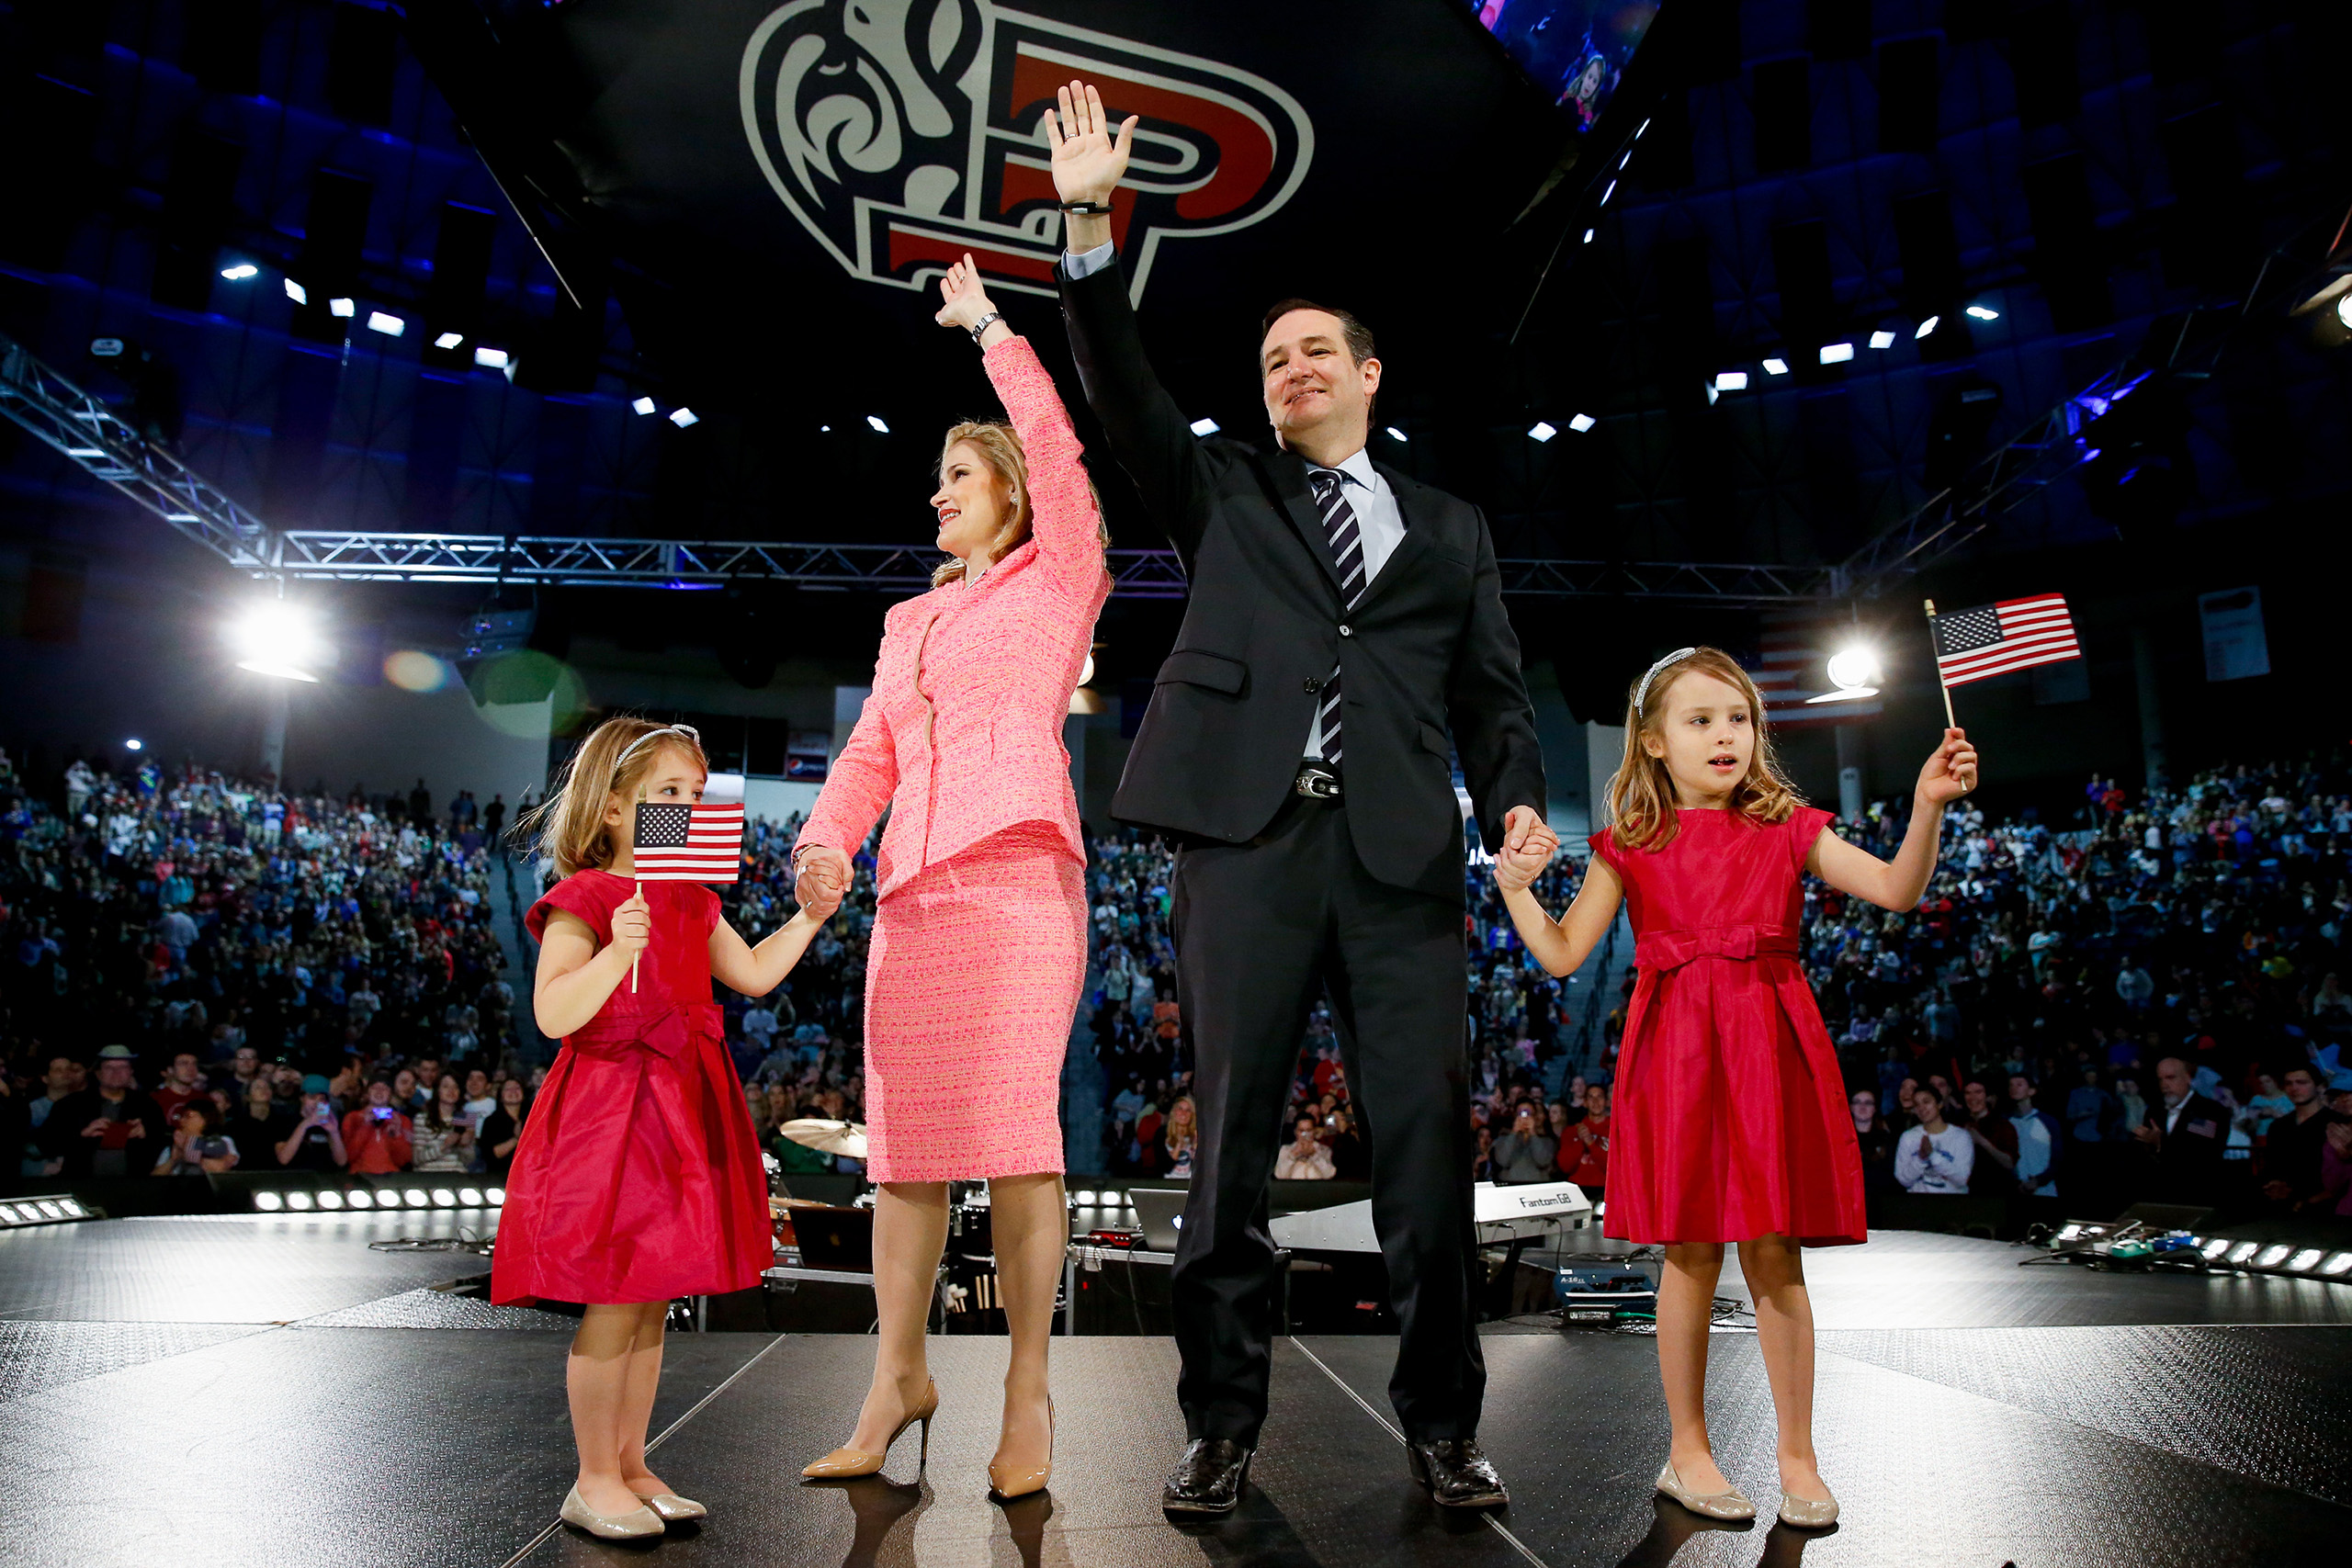 Ted Cruz, his wife Heidi, and their two daughters, Catherine and Caroline, wave on stage after he announced his campaign for president, the first candidate to officially enter the race, in Lynchburg, Va. on March. 23, 2015.